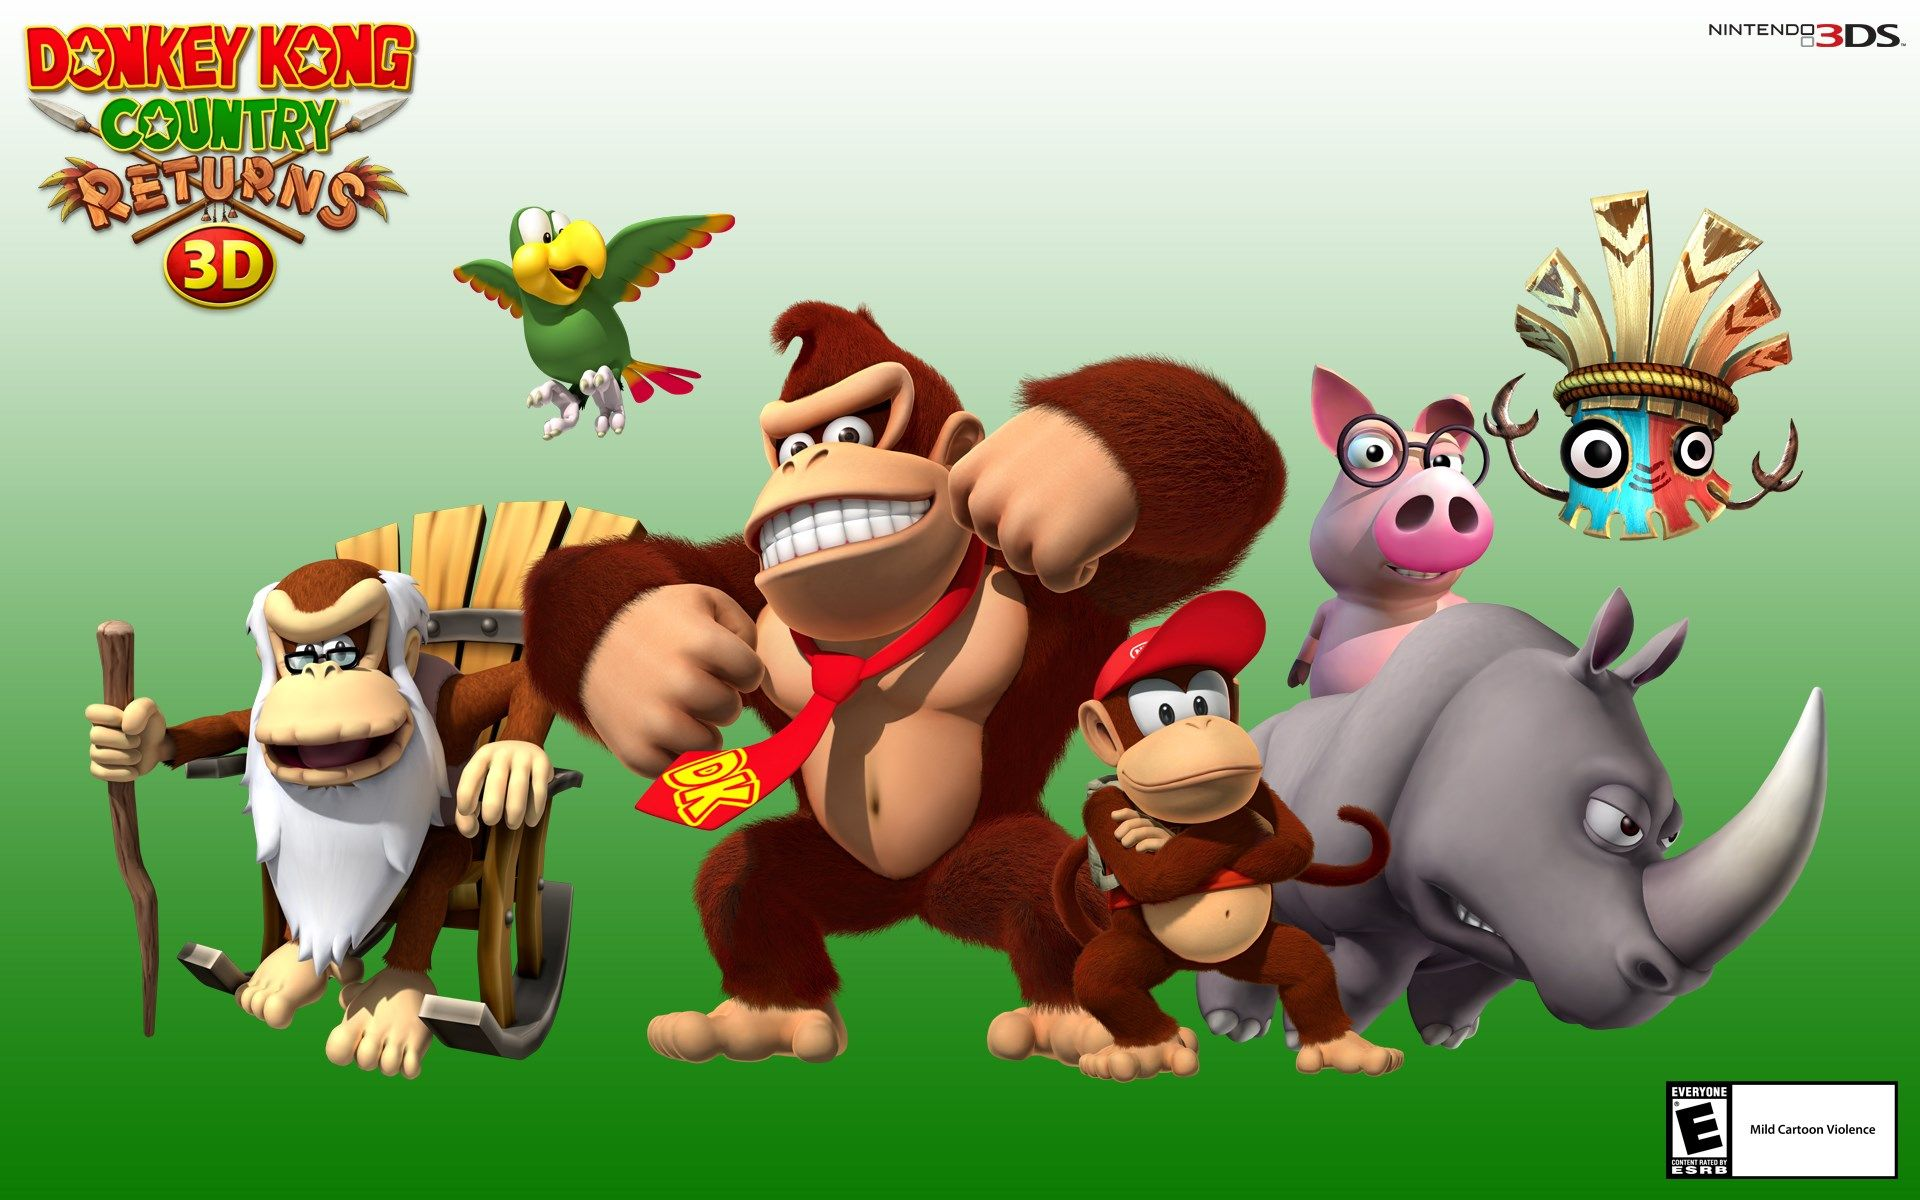 1518690 Widescreen Wallpapers Donkey Kong Country Returns 3d